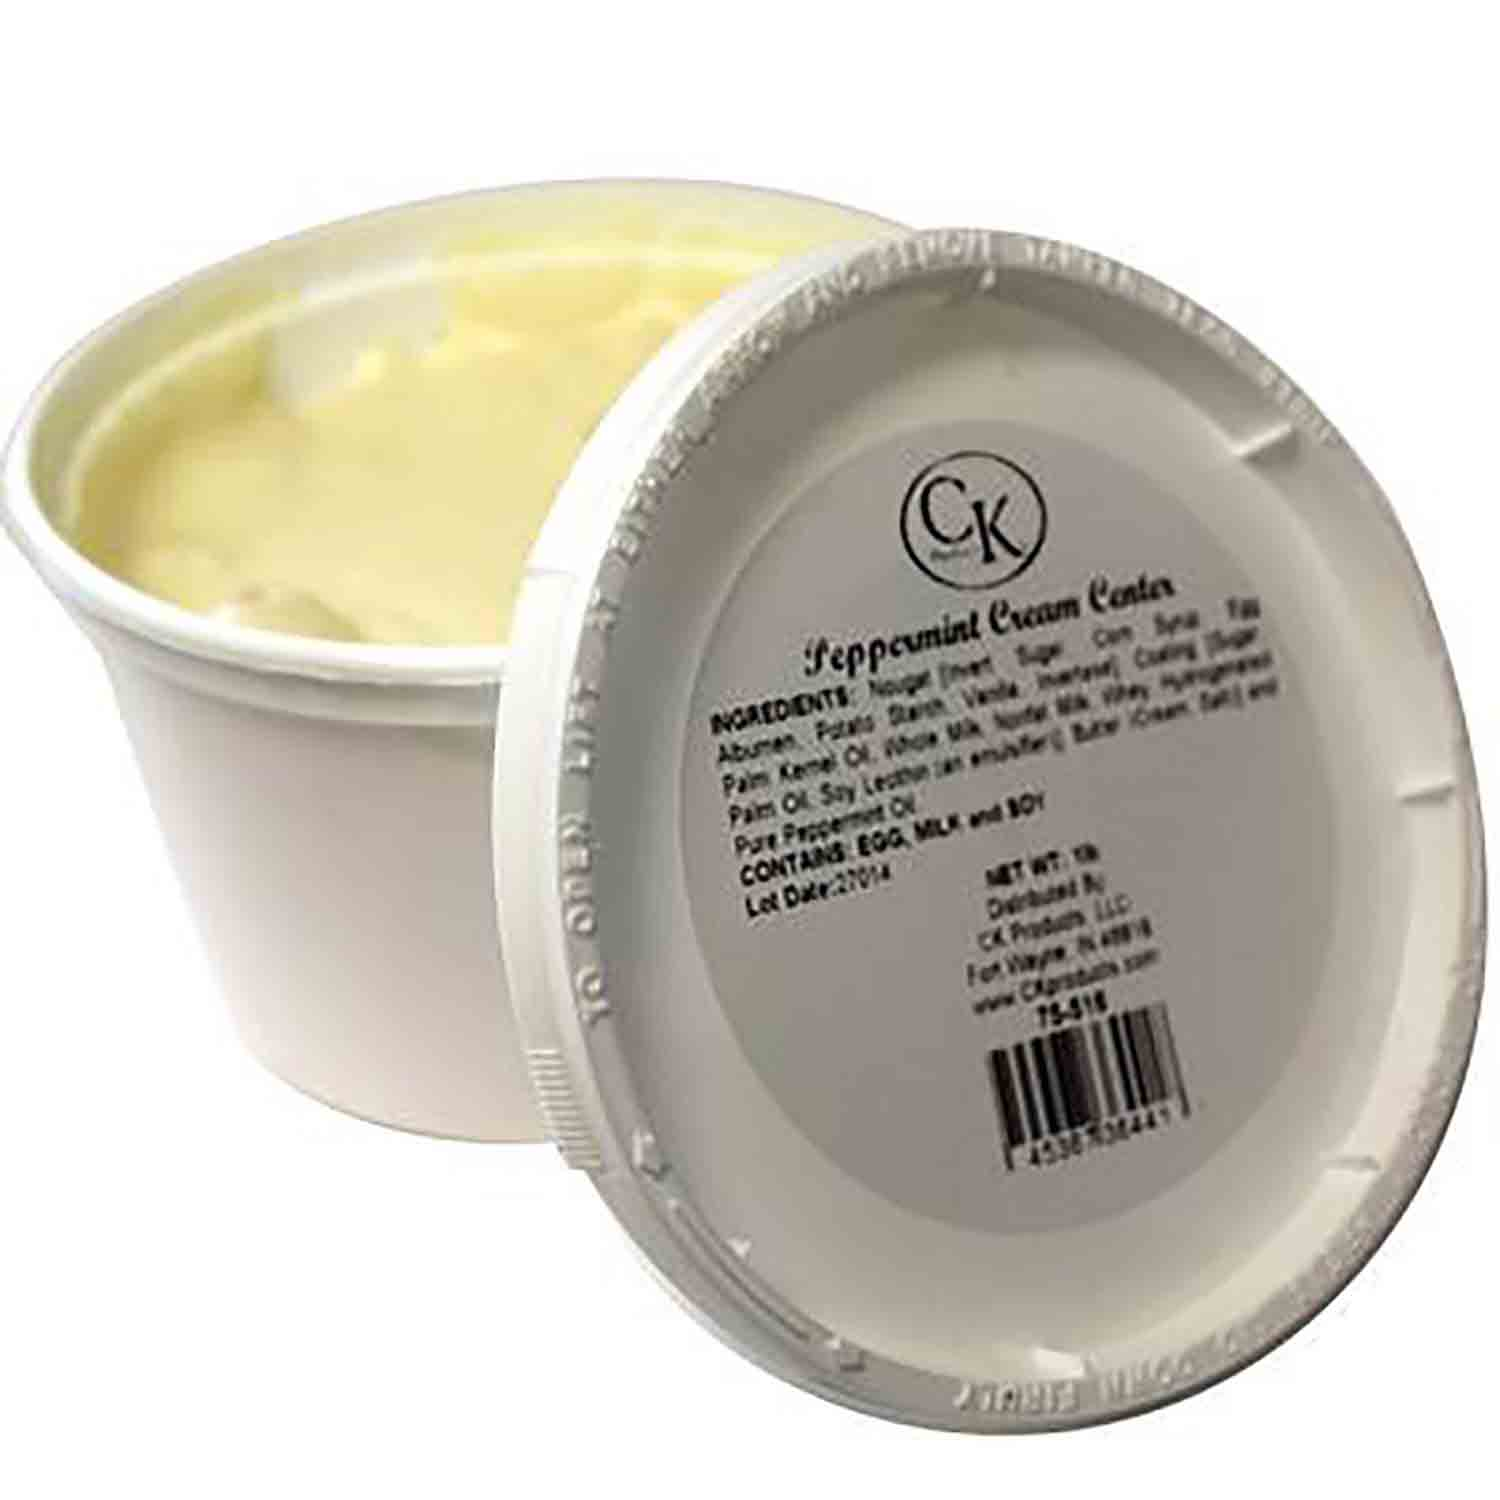 Peppermint Cream Center by CK Products/Burkes